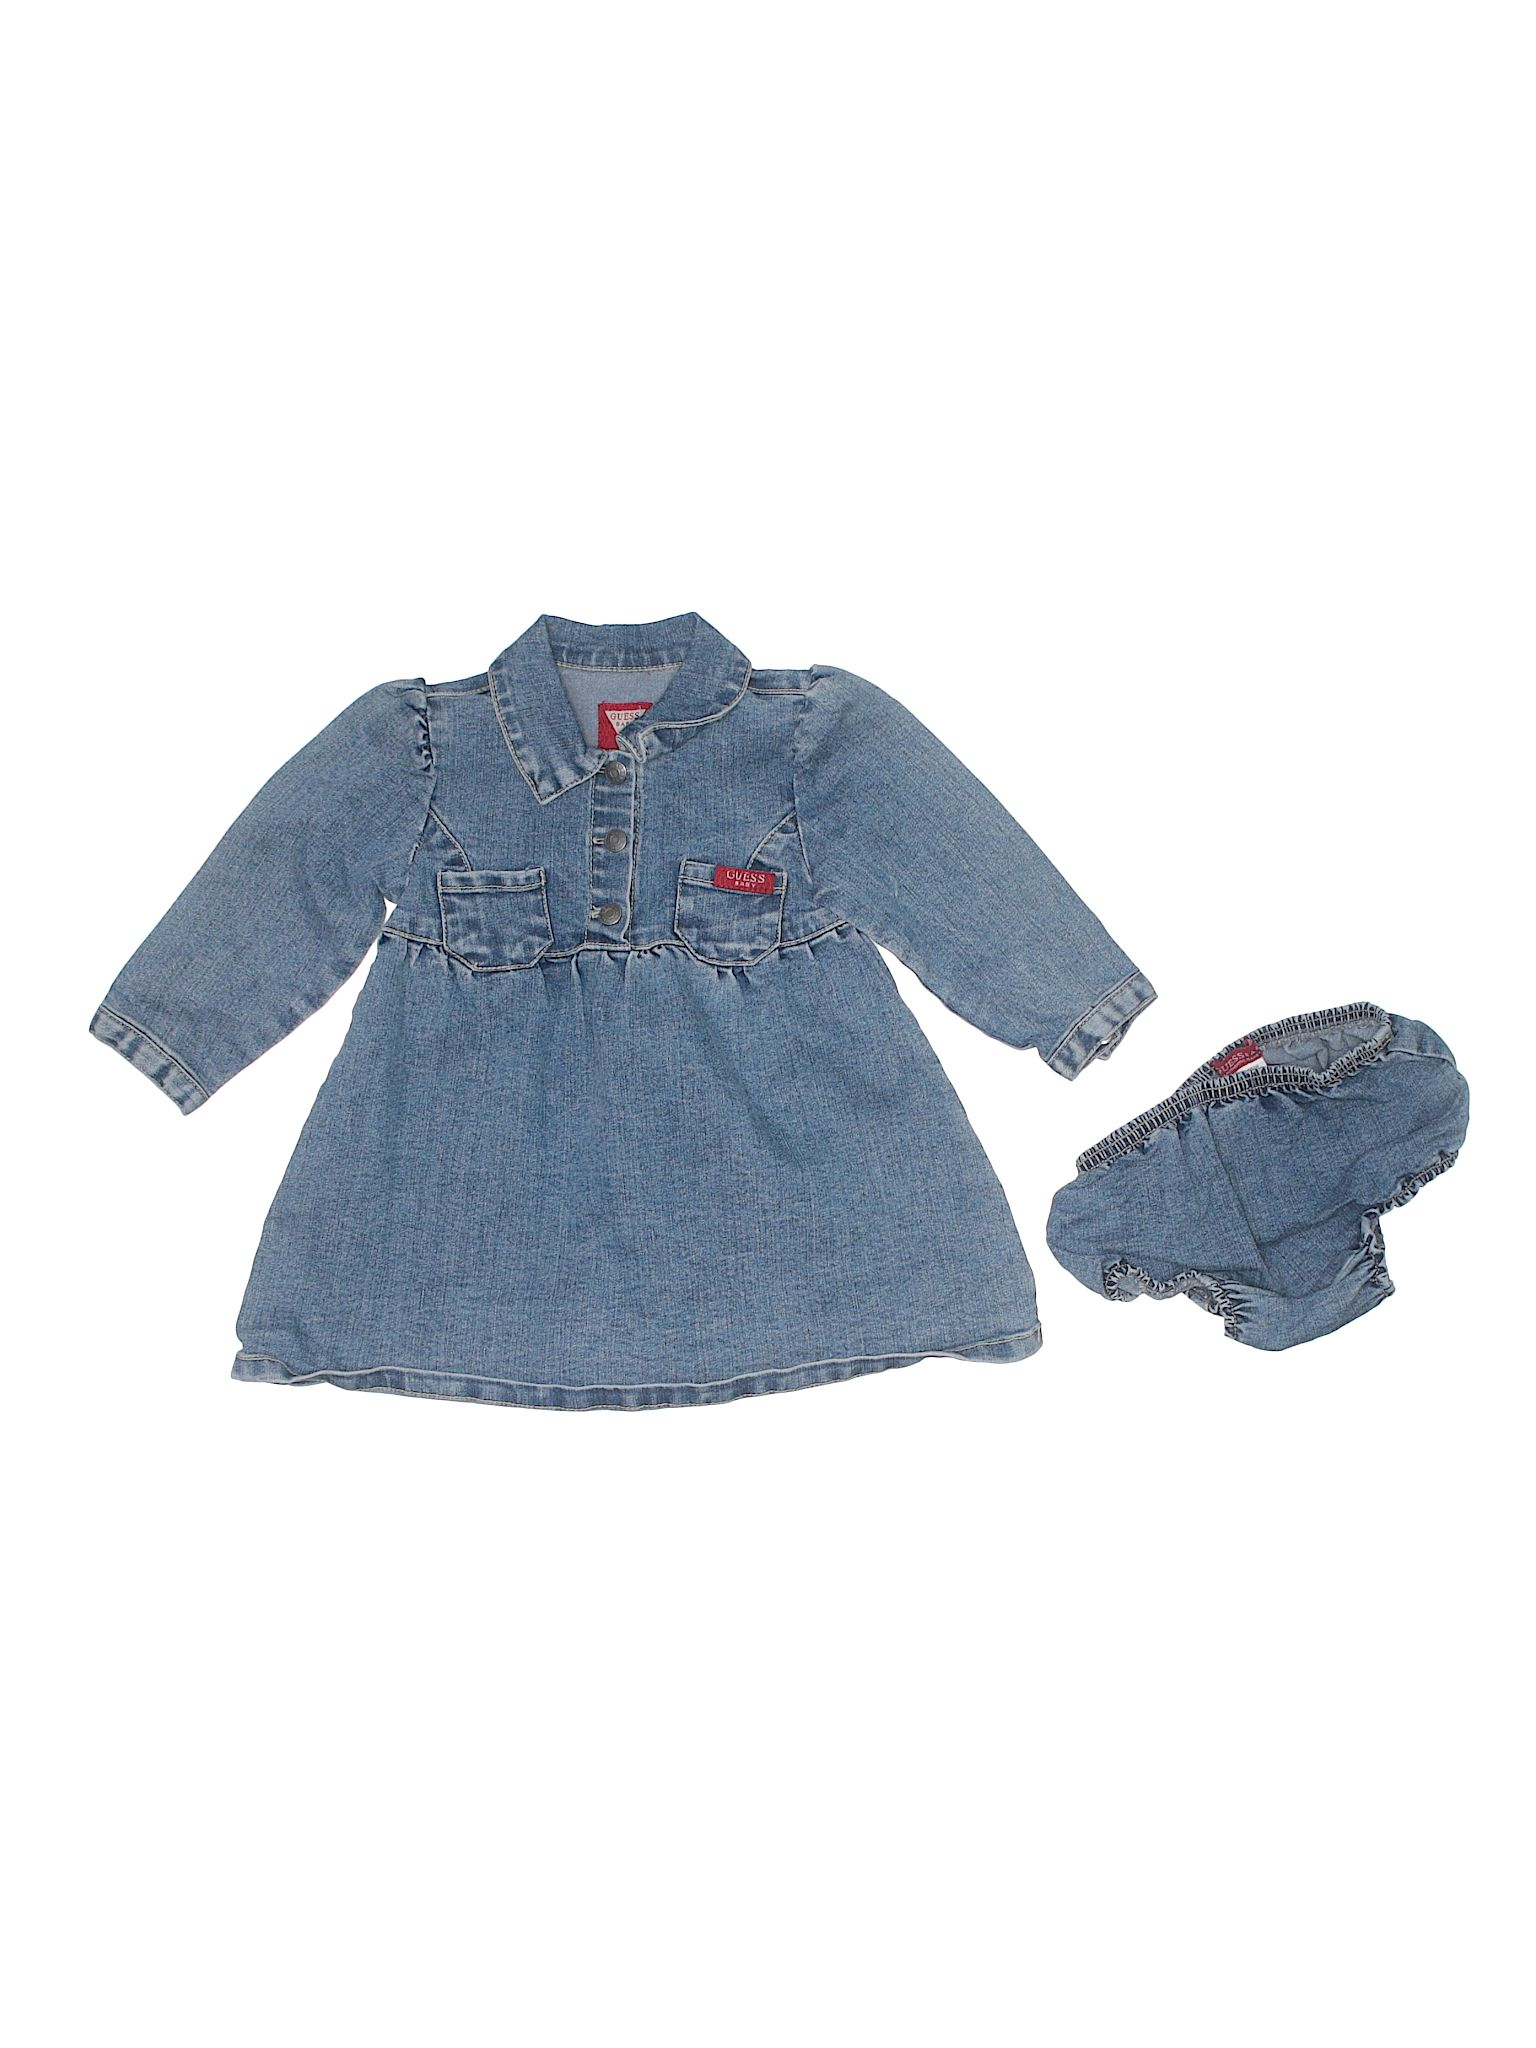 Guess Baby Dress Blue Girls Skirts & Dresses